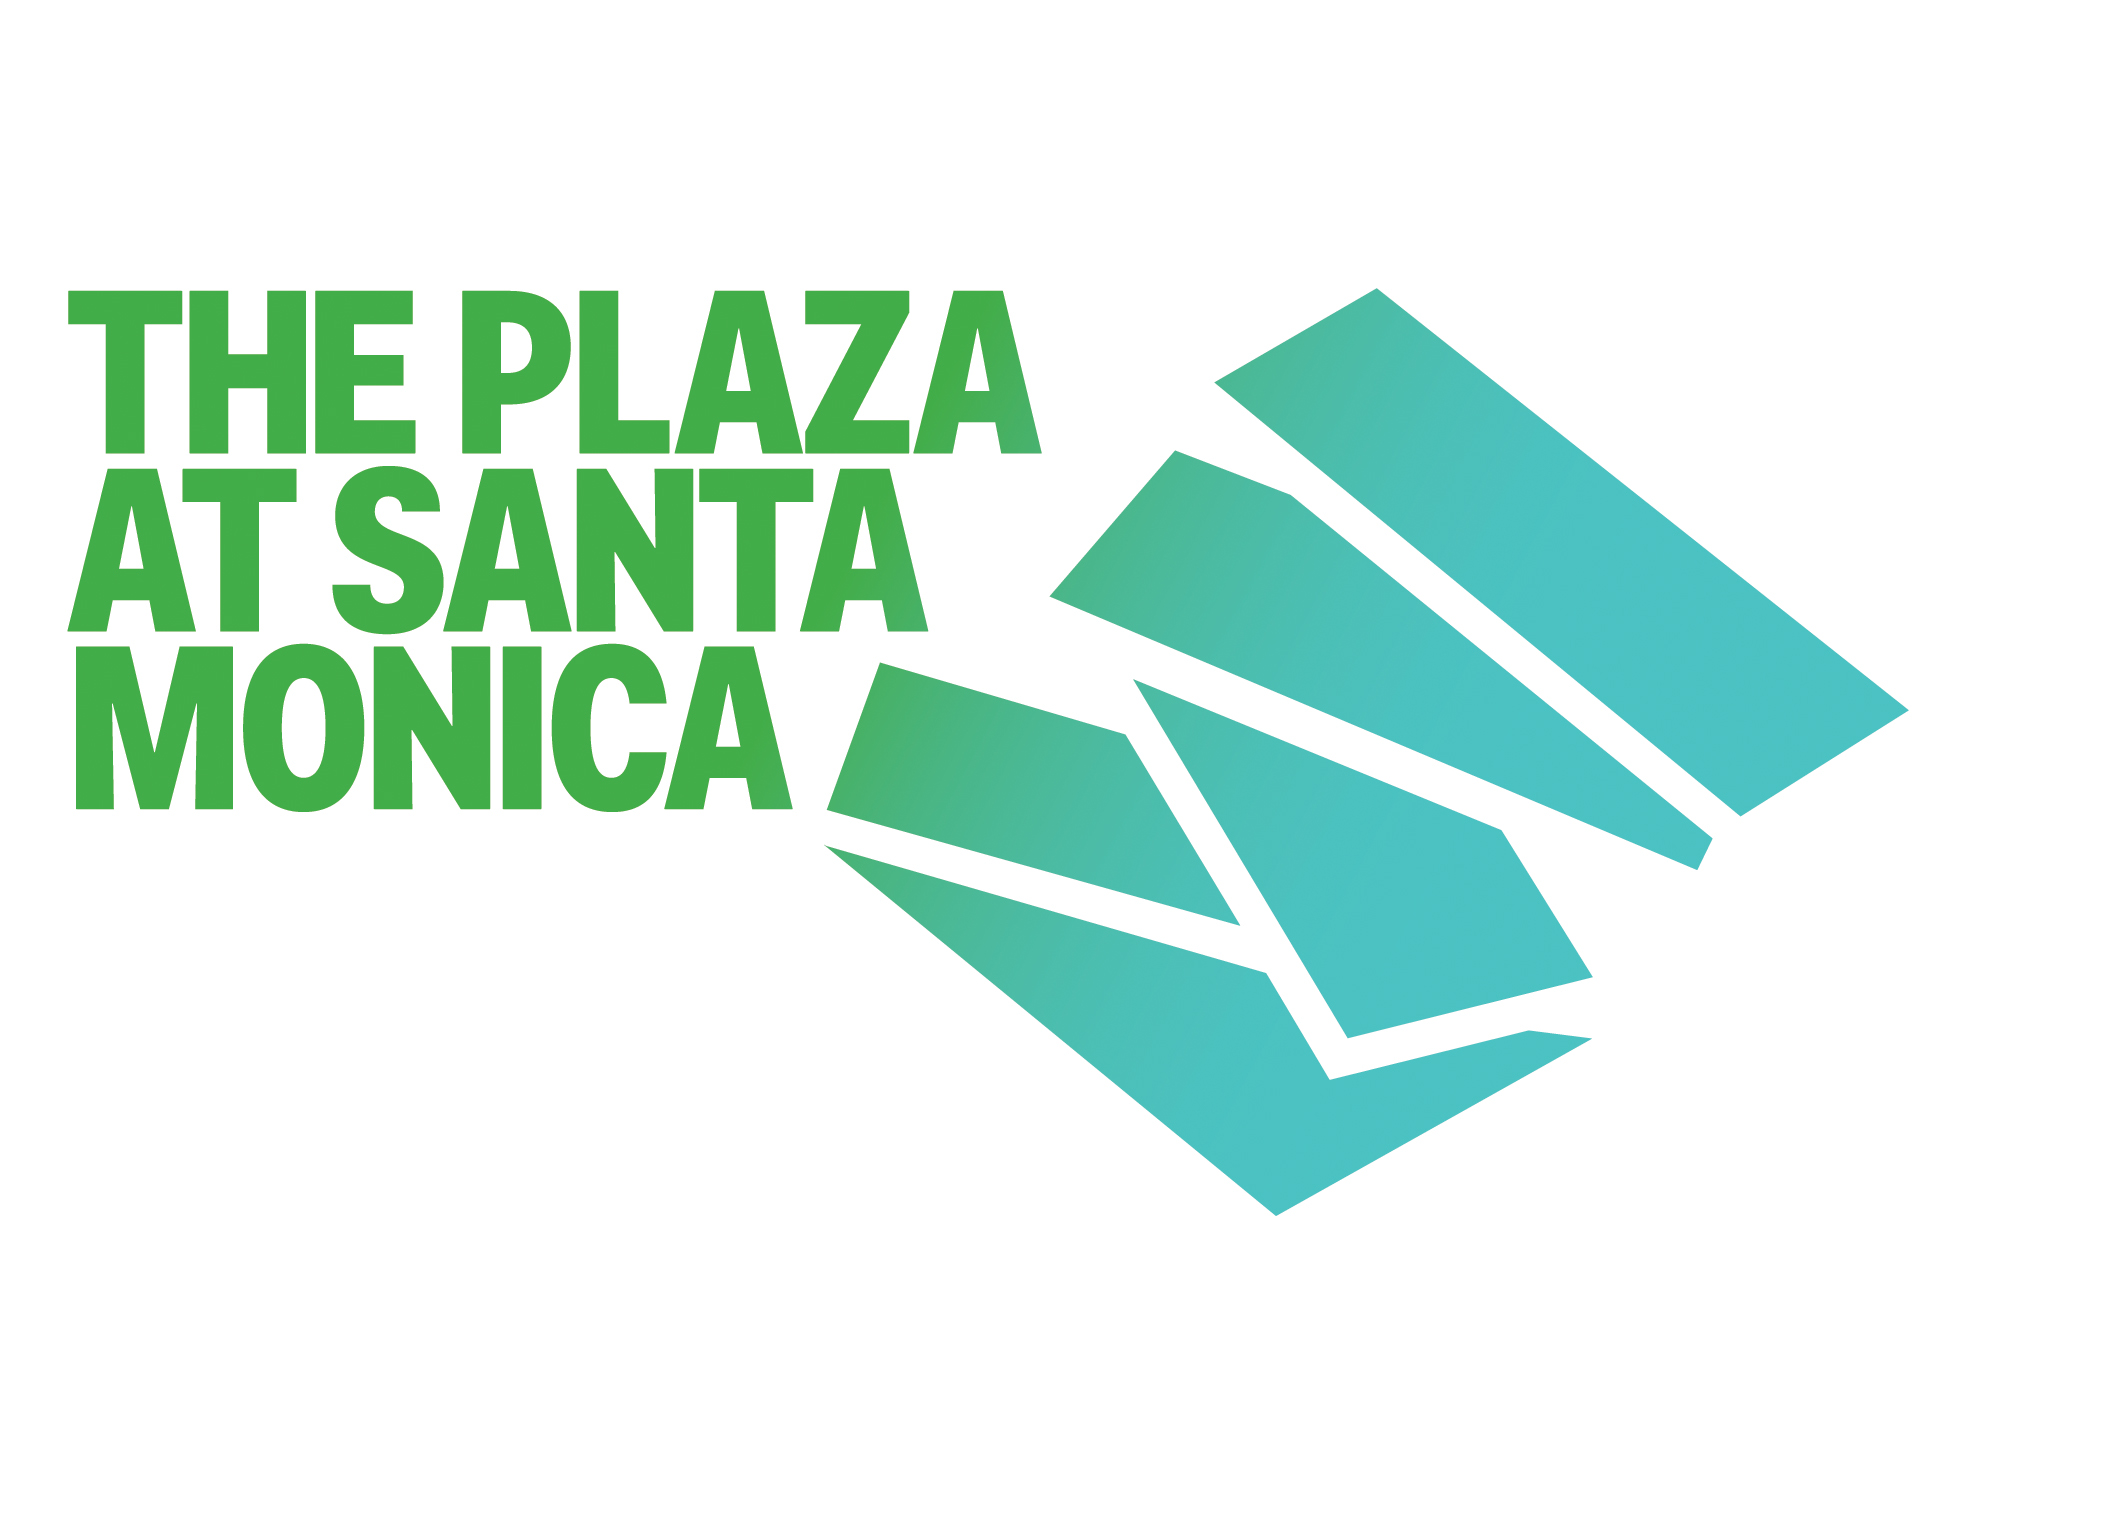 Plaza at Santa Monica logo